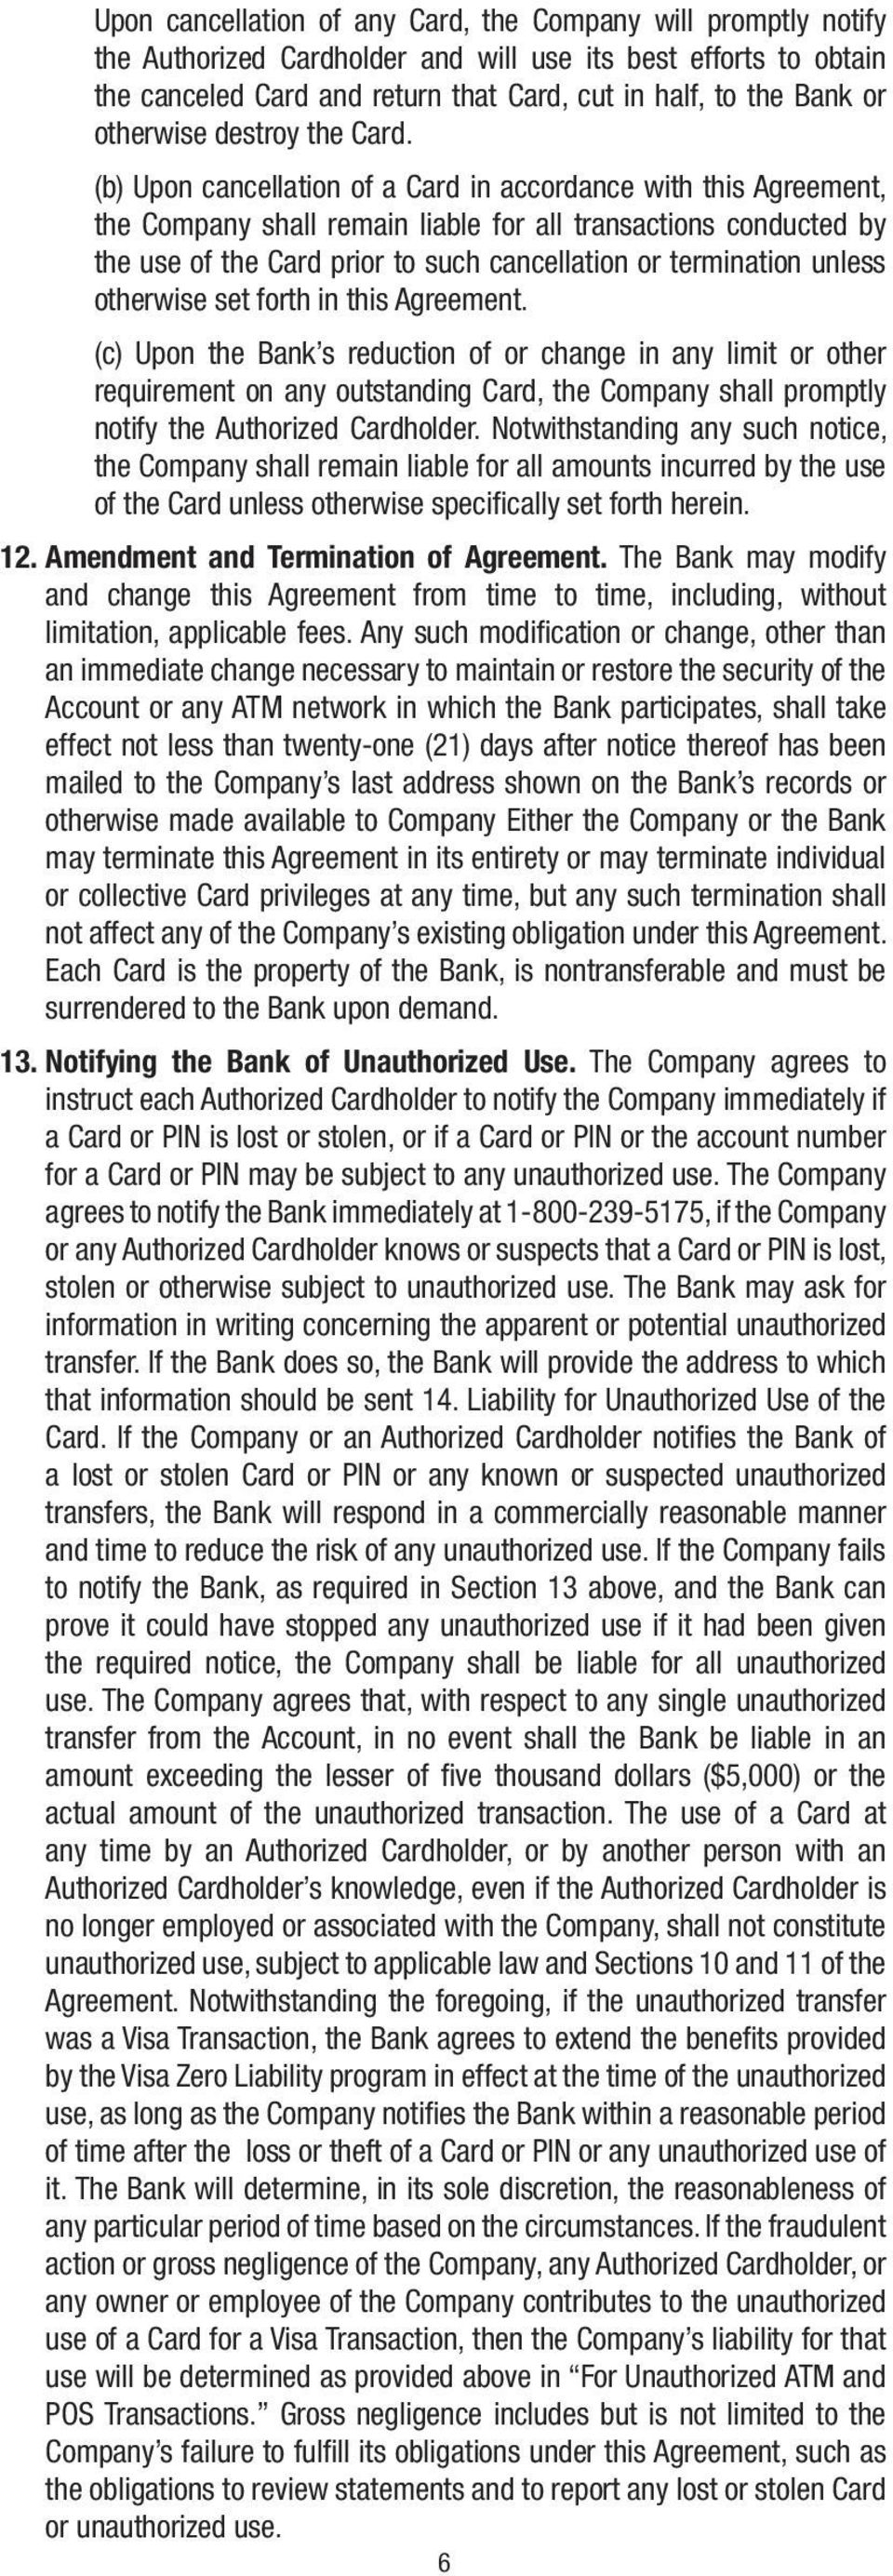 (b) Upon cancellation of a Card in accordance with this Agreement, the Company shall remain liable for all transactions conducted by the use of the Card prior to such cancellation or termination